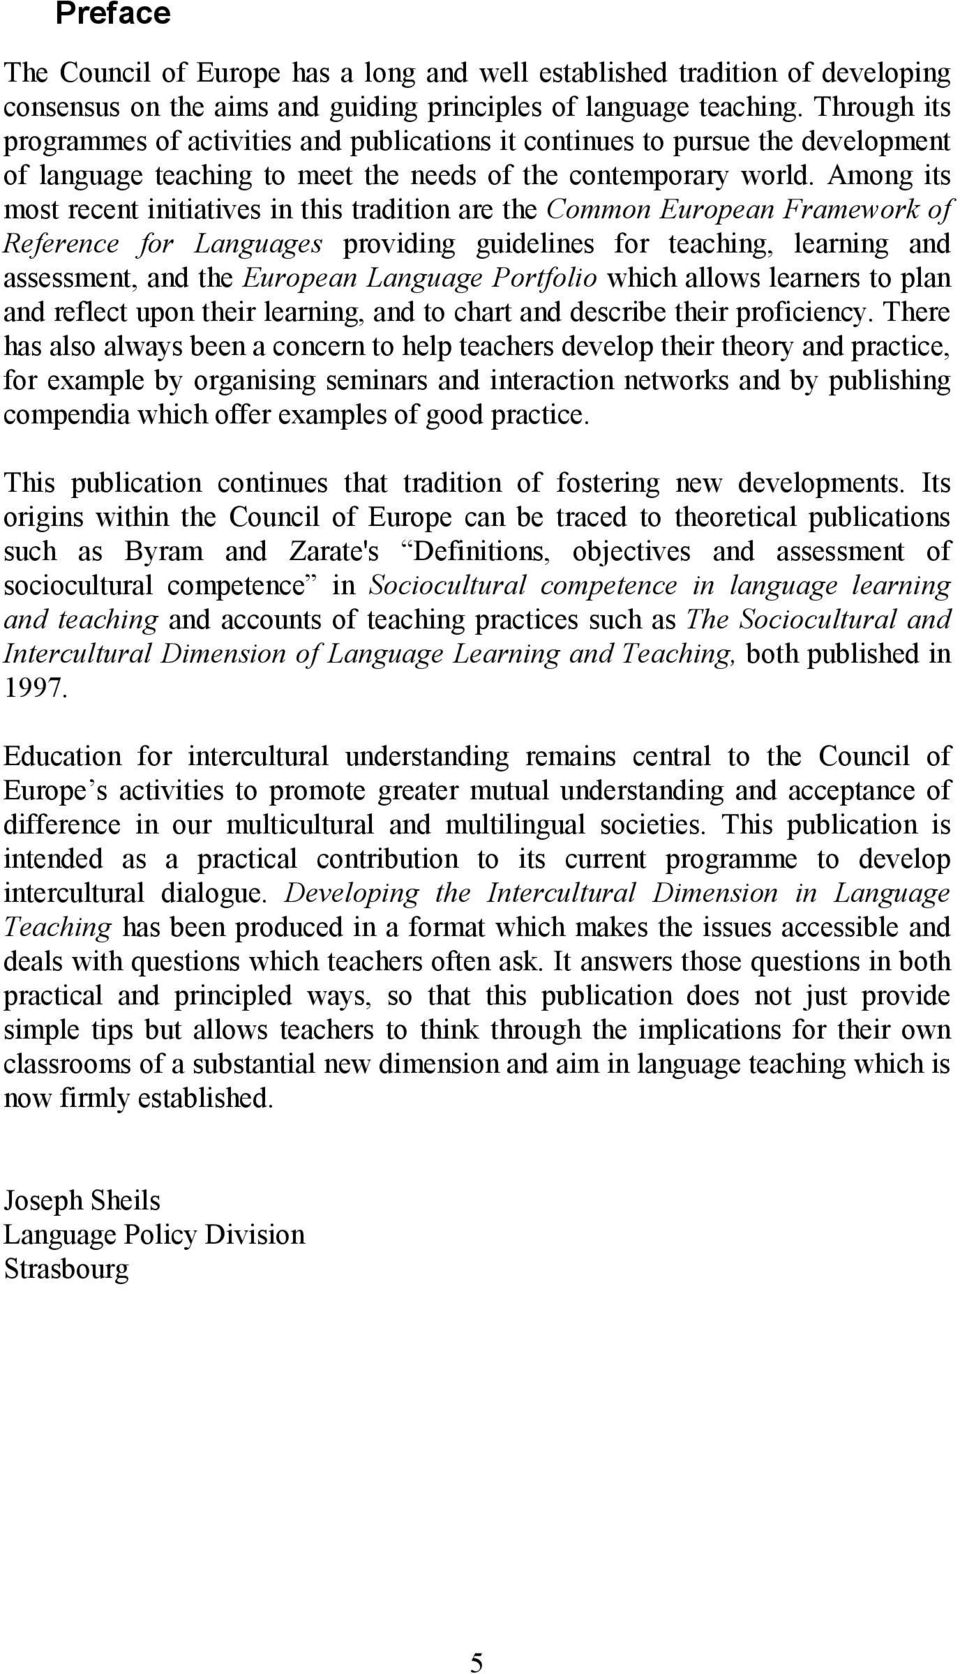 Among its most recent initiatives in this tradition are the Common European Framework of Reference for Languages providing guidelines for teaching, learning and assessment, and the European Language